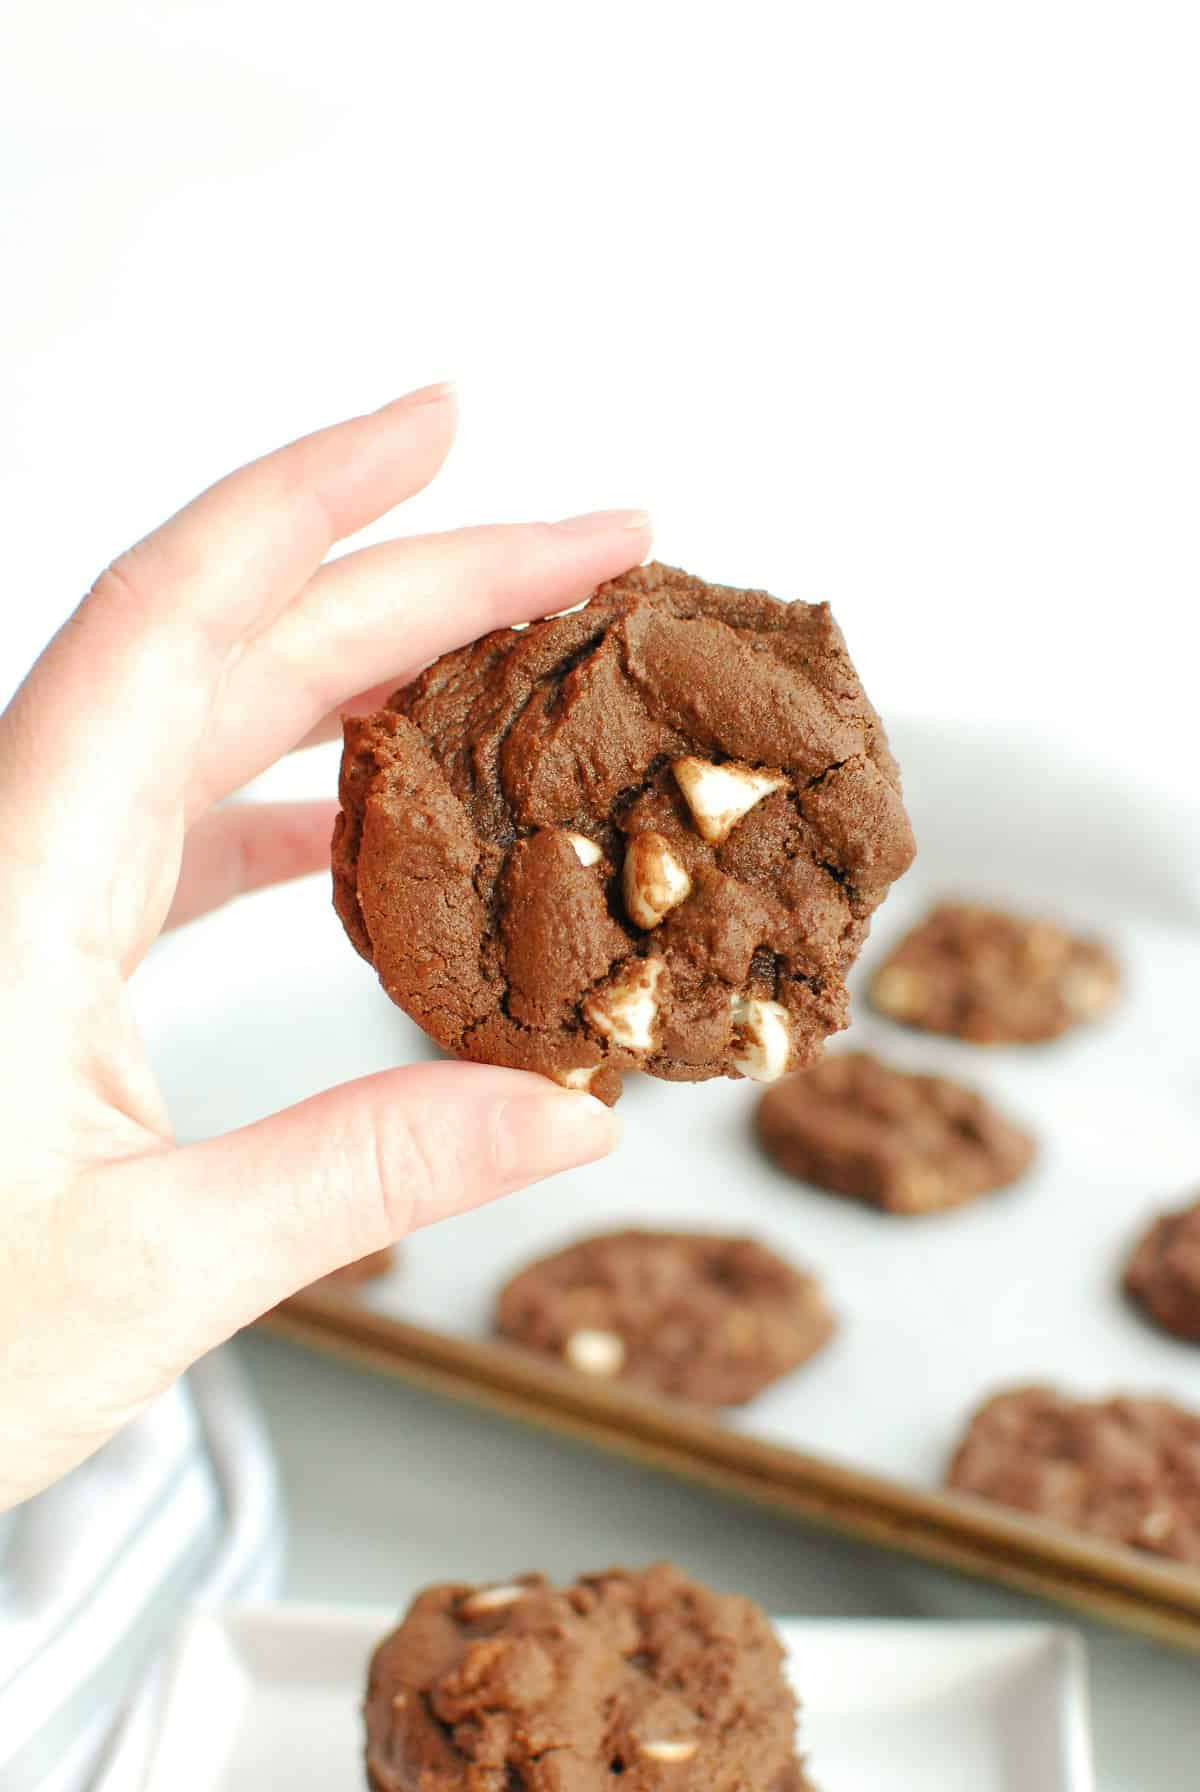 a woman's hand holding a dairy free chocolate cookie with white chocolate chips